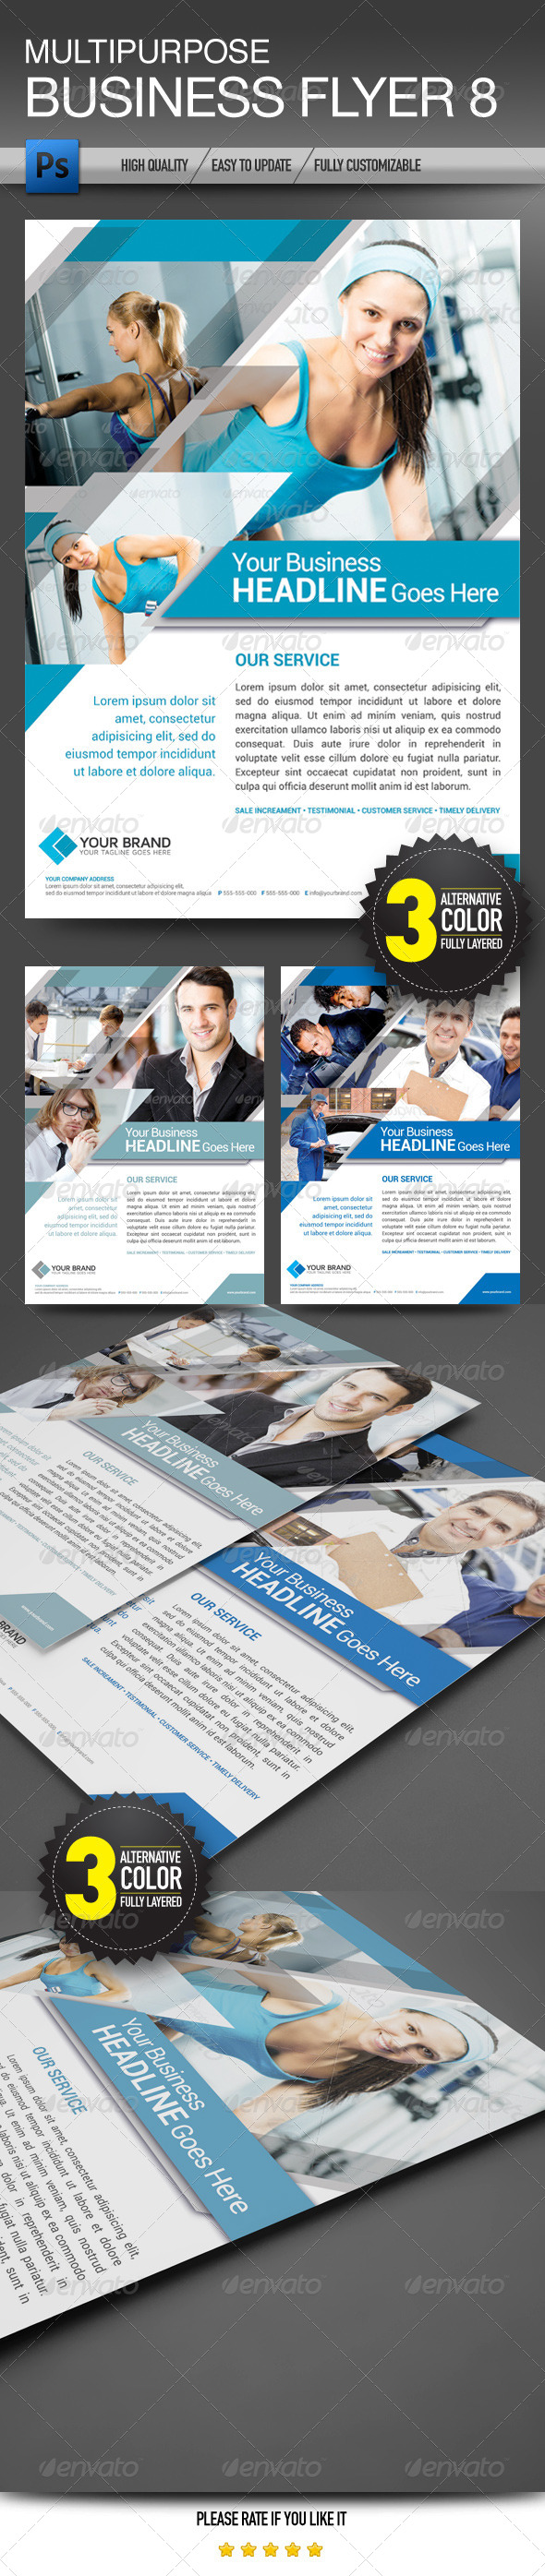 GraphicRiver Multipurpose Business Flyer 8 7018512